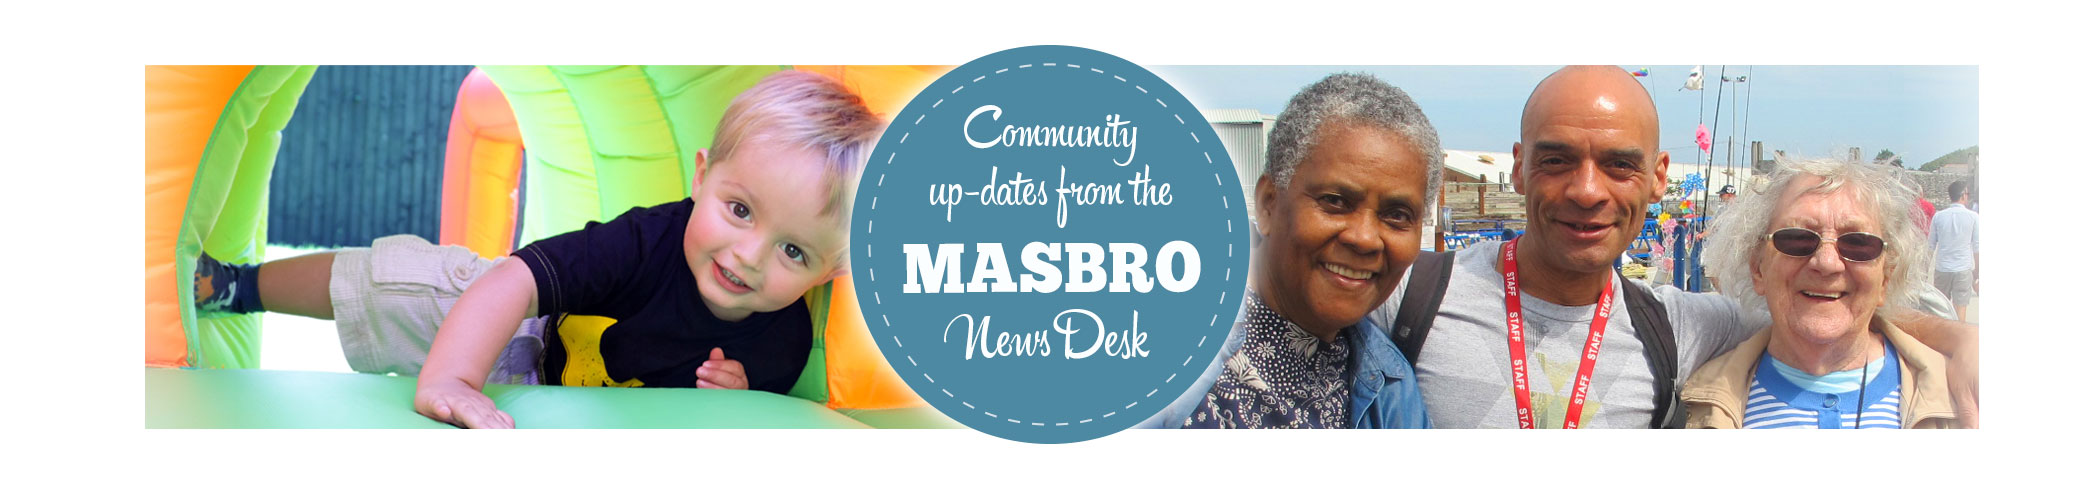 Masbro News Desk page iphone banner